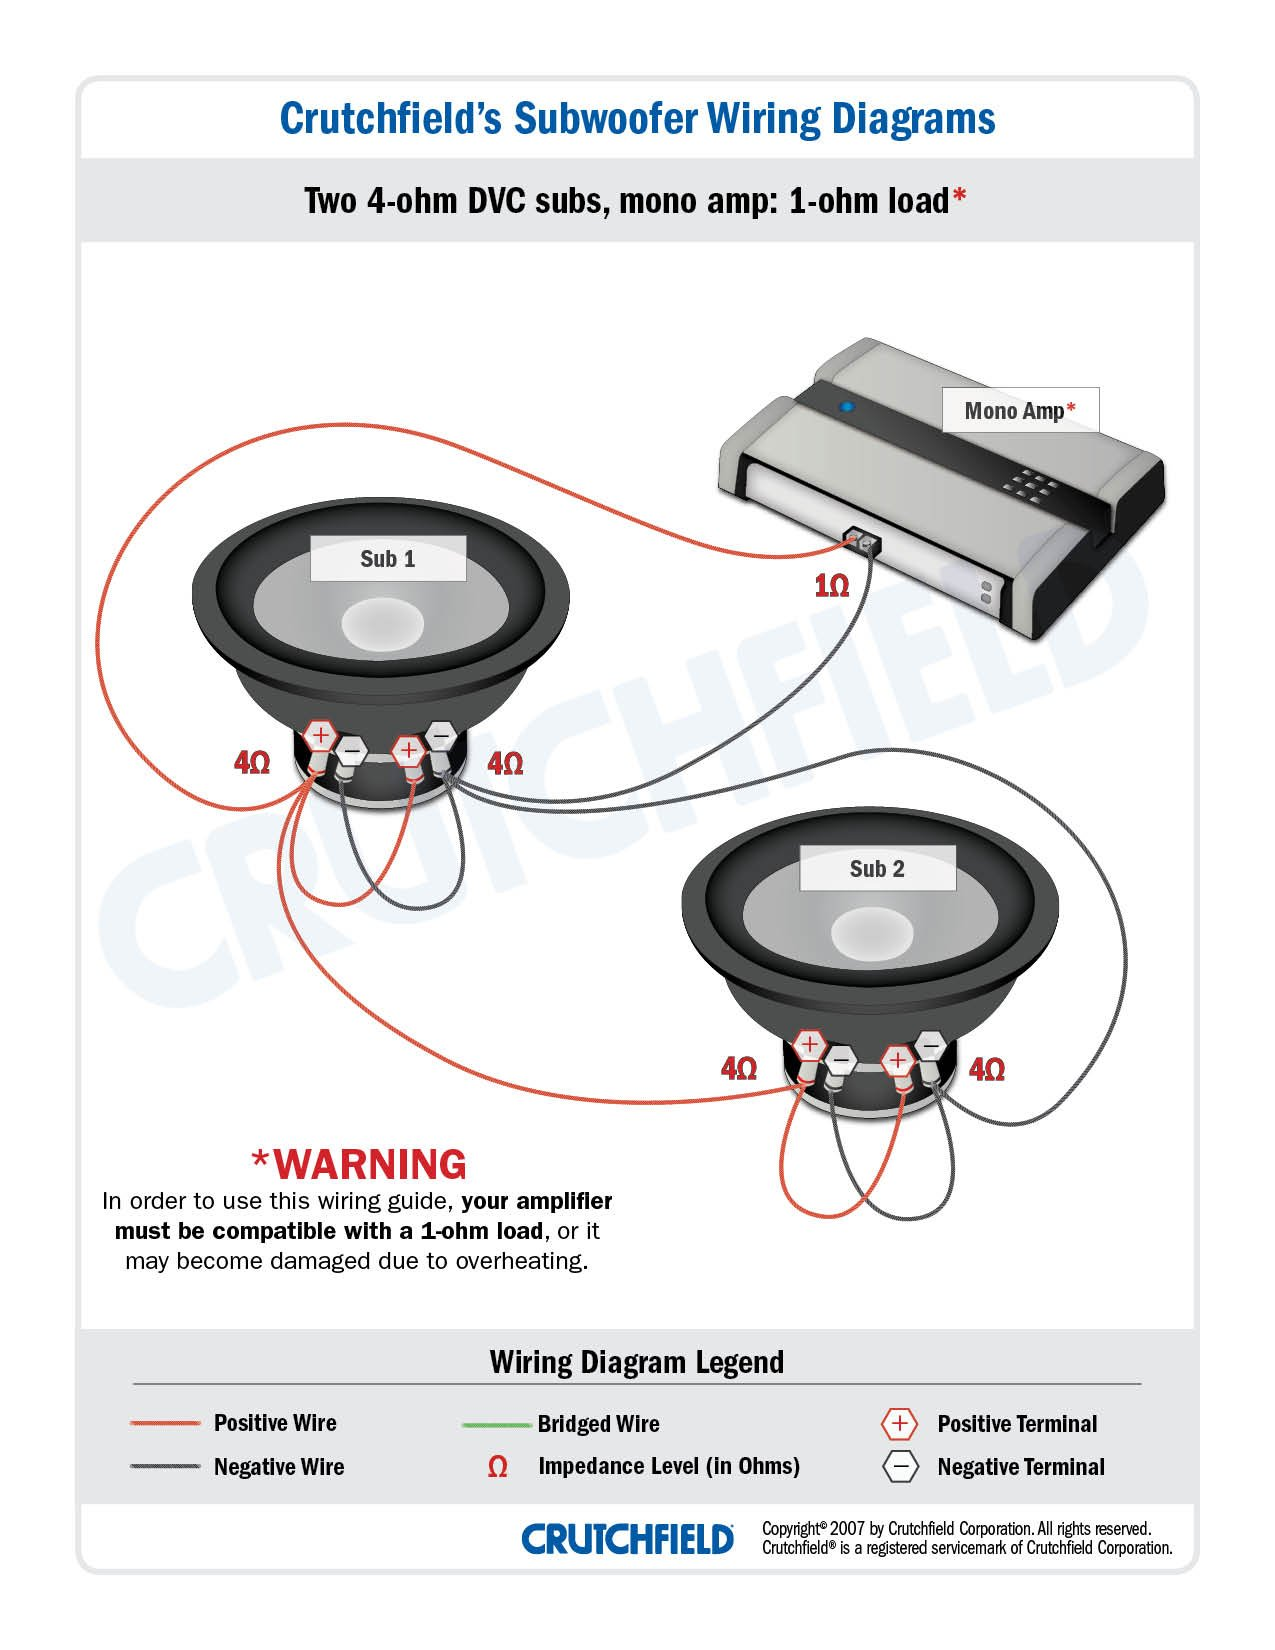 2 DVC 4 ohm mono low imp subwoofer wiring diagrams 4 Channel Amp Wiring Diagram at edmiracle.co